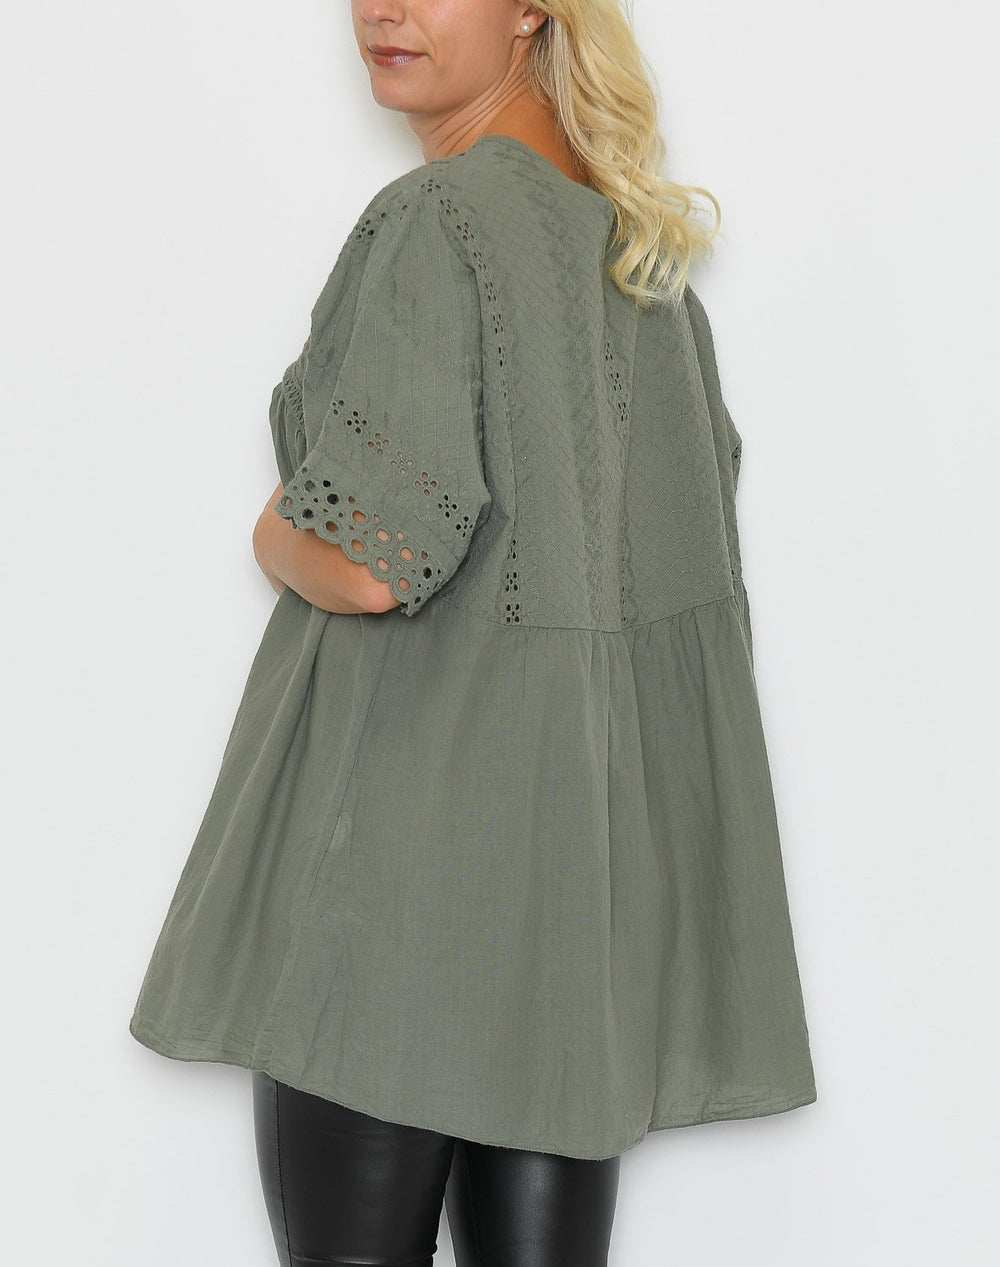 Anne tunic olive - Online-Mode